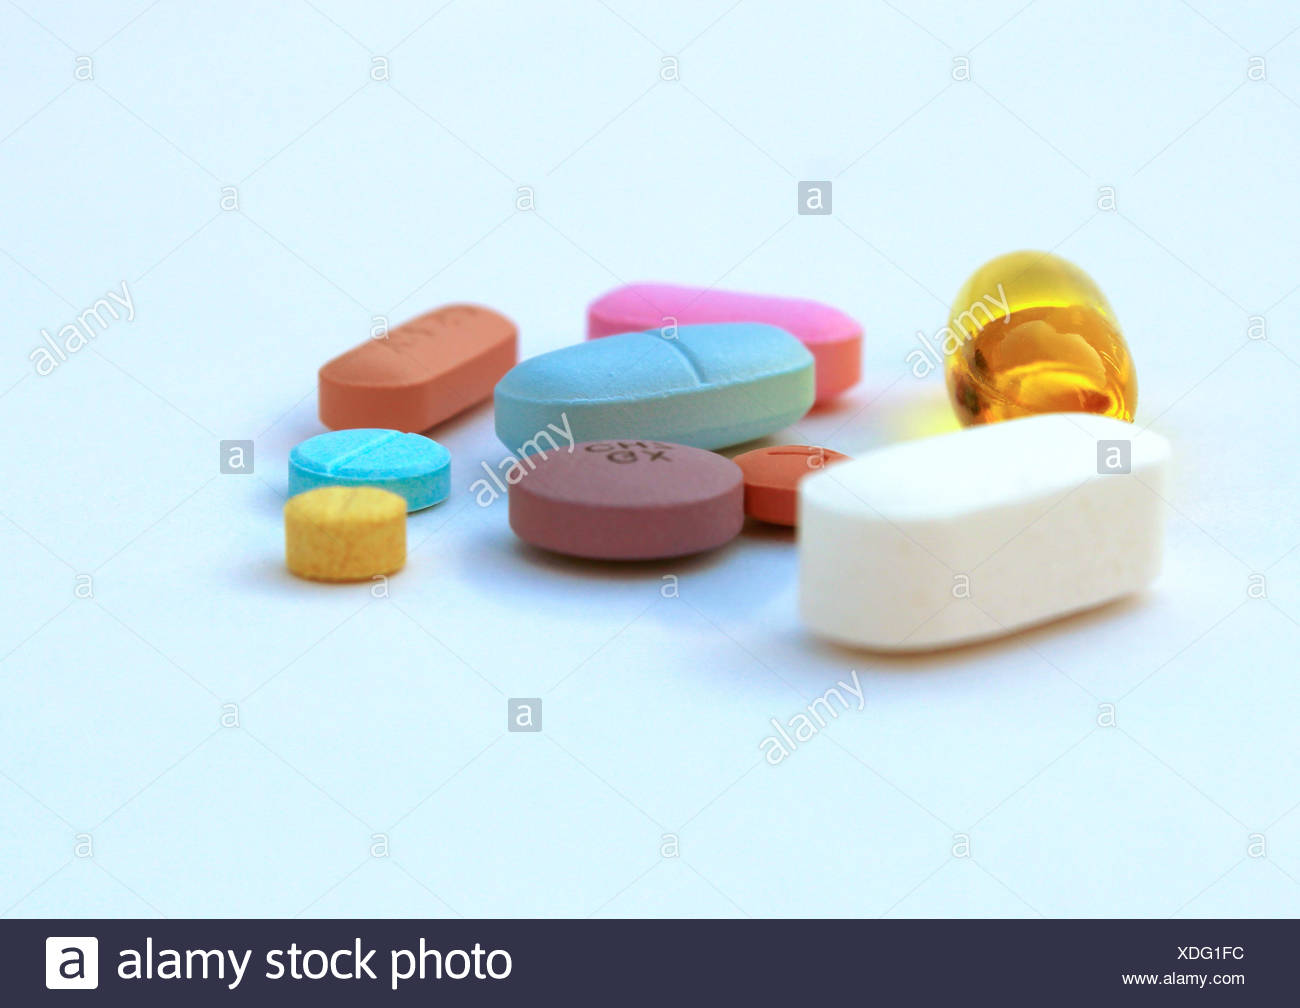 pills, drugs, means, agent, medicine, drug, remedy, substance